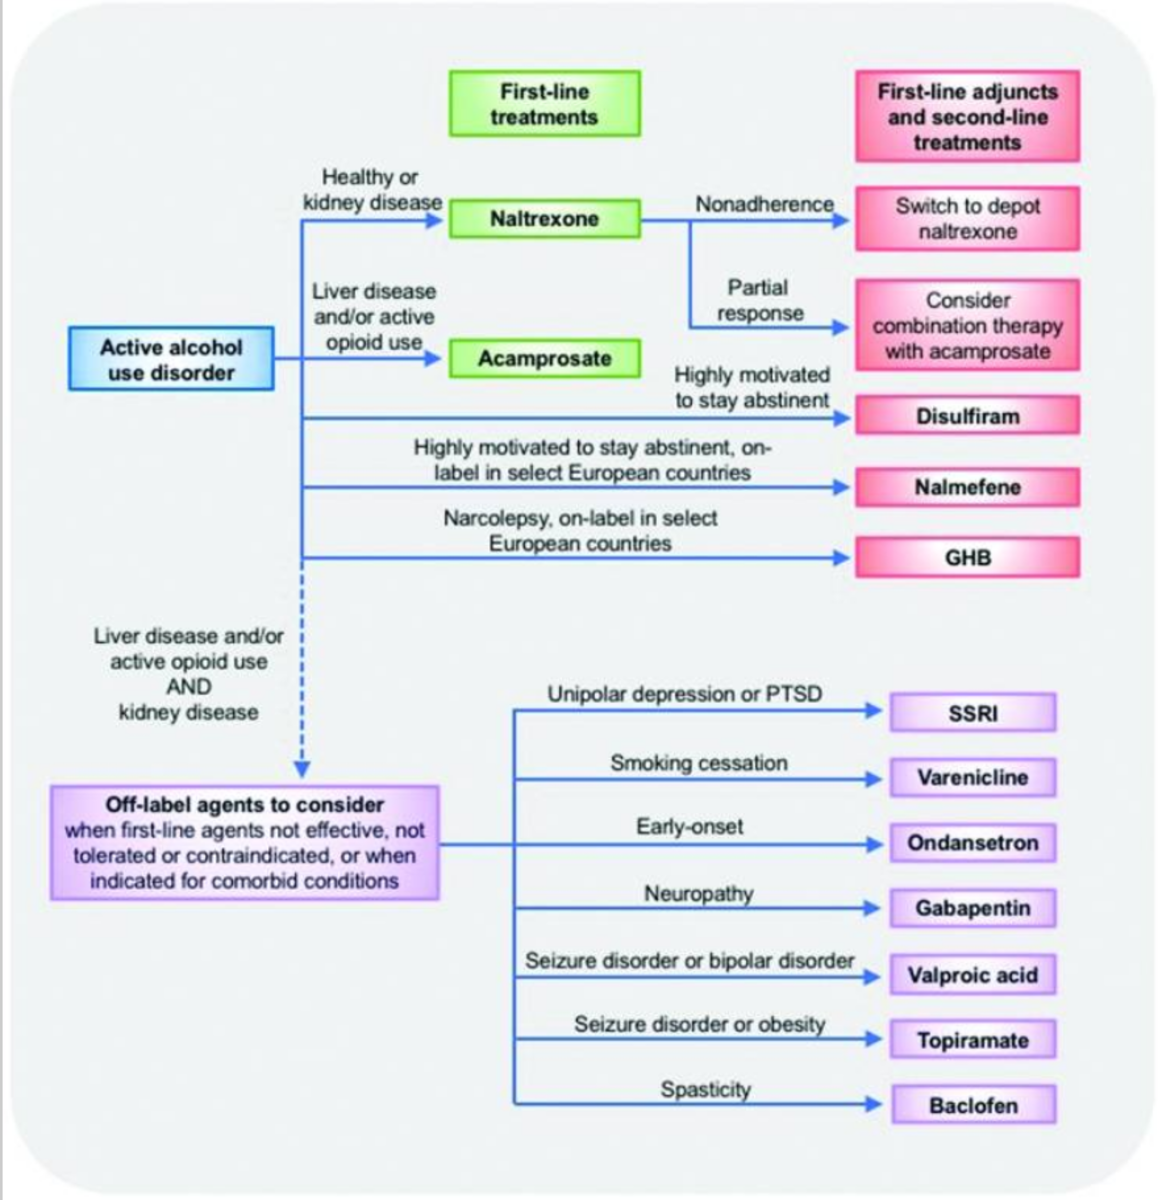 Suggested treatment algorithm for alcohol use disorder (AUD)